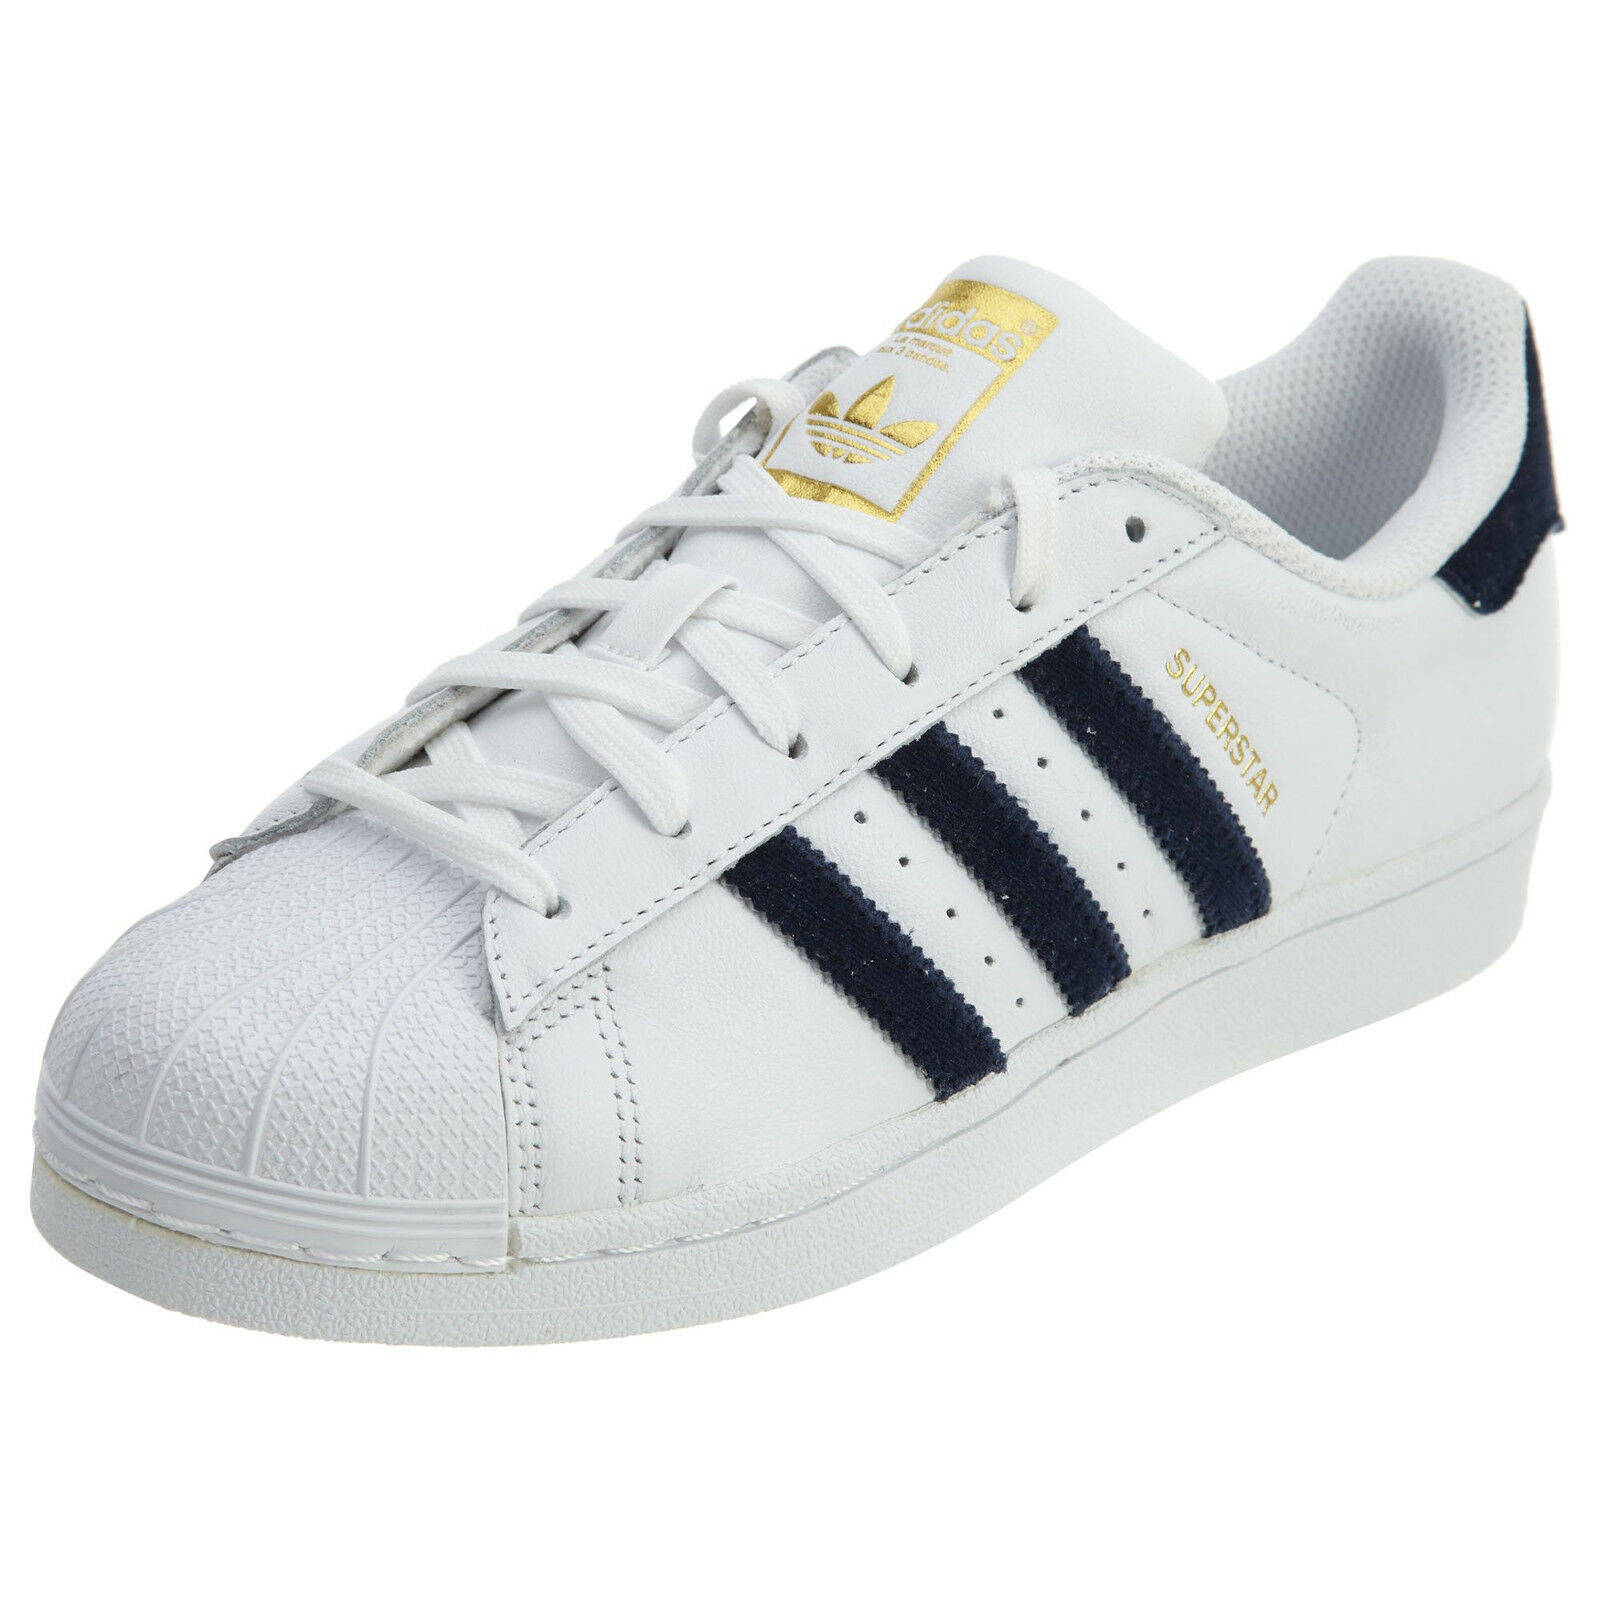 ADIDAS ORIGINAL SUPERSTAR LEATHER LOW SNEAKER WOMEN SHOES WHITE AC7163 SZ 9 NEW